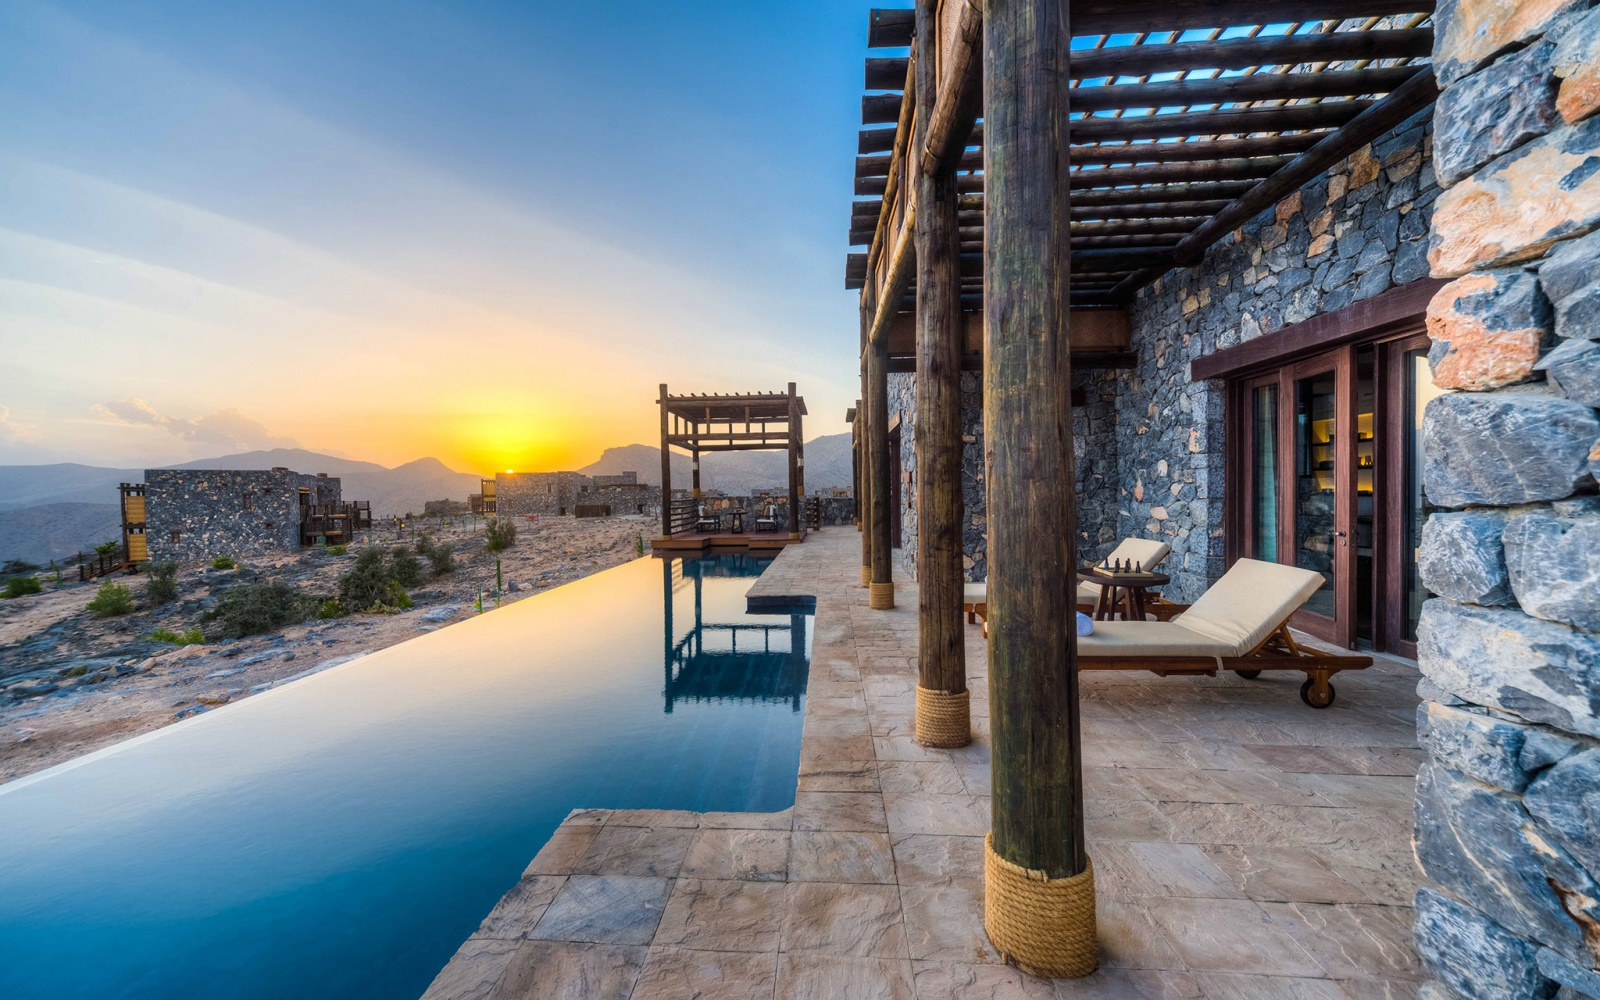 Alila Jabal Akhdar Resort in Muscat, Oman